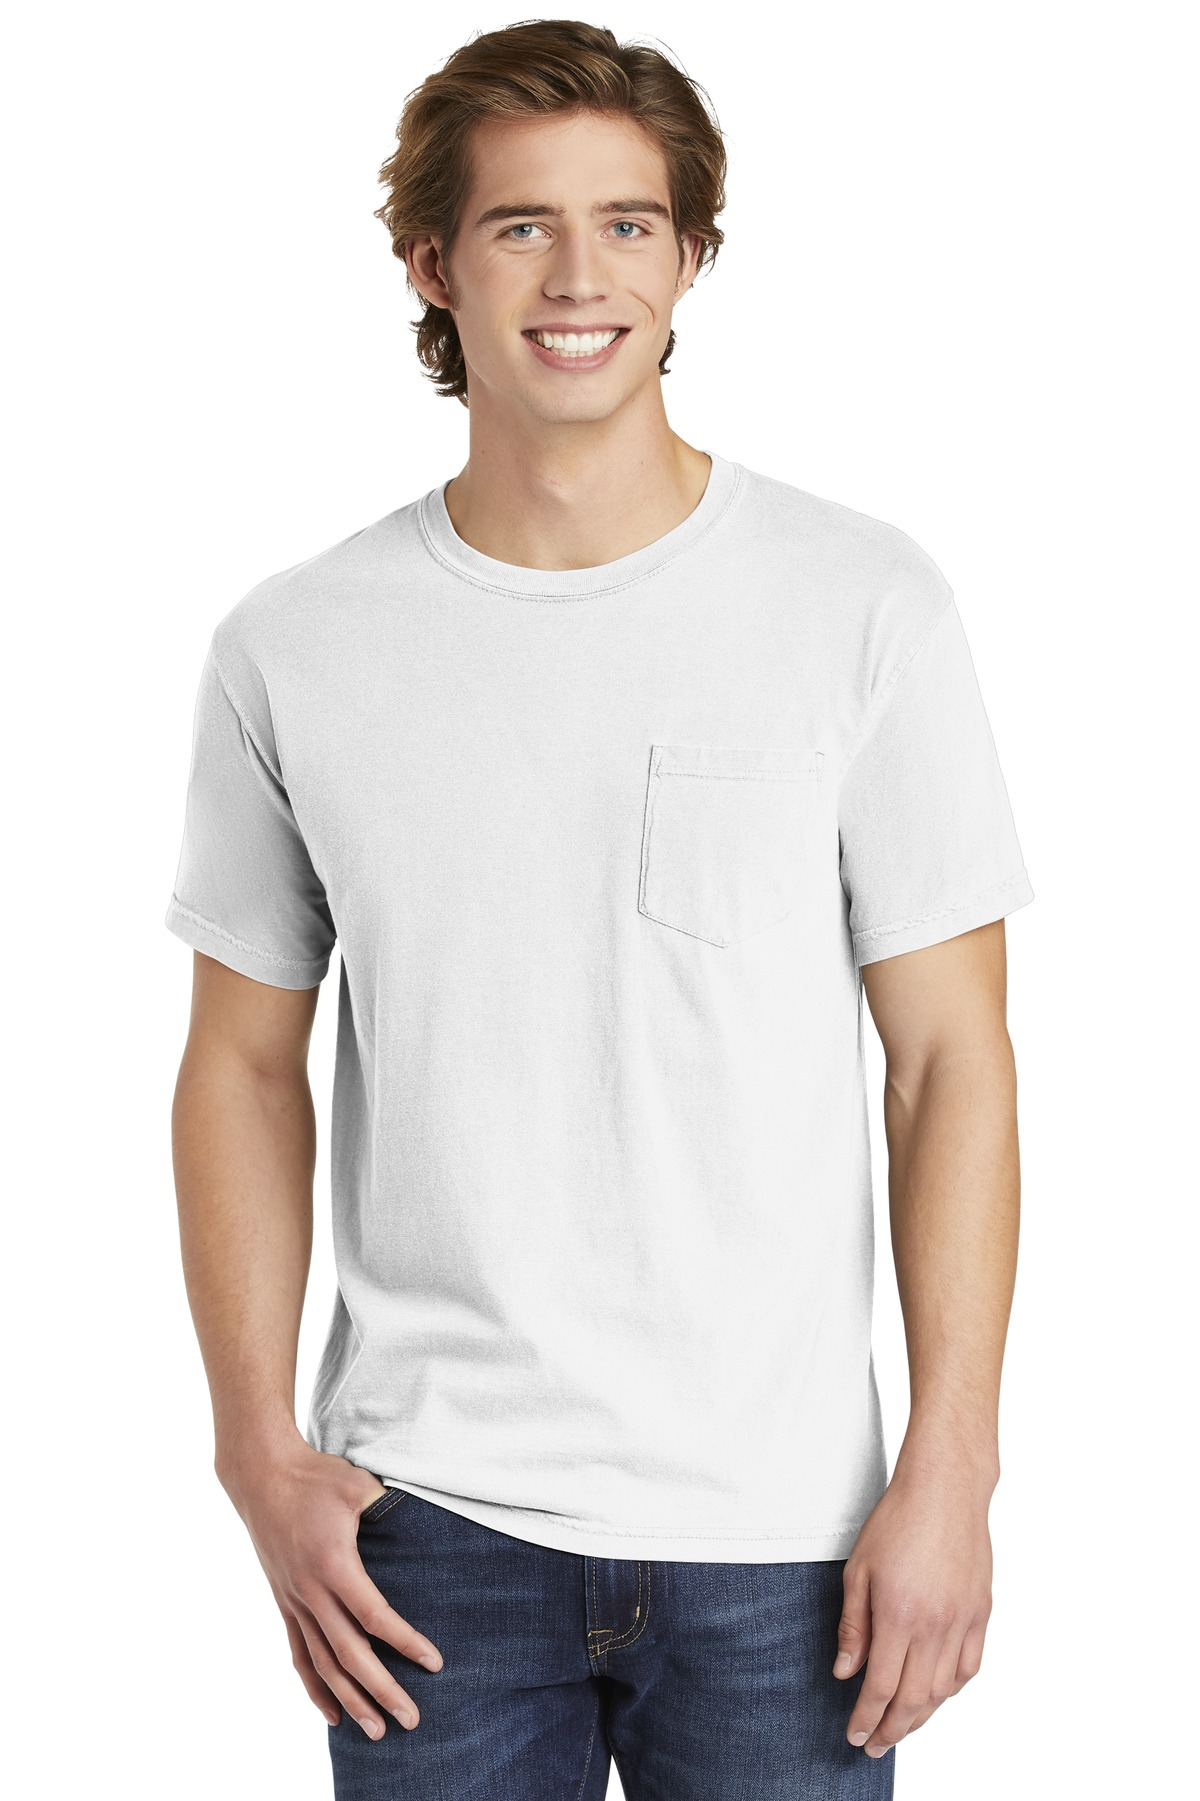 COMFORT COLORS  ®  Heavyweight Ring Spun Pocket Tee. 6030 - White